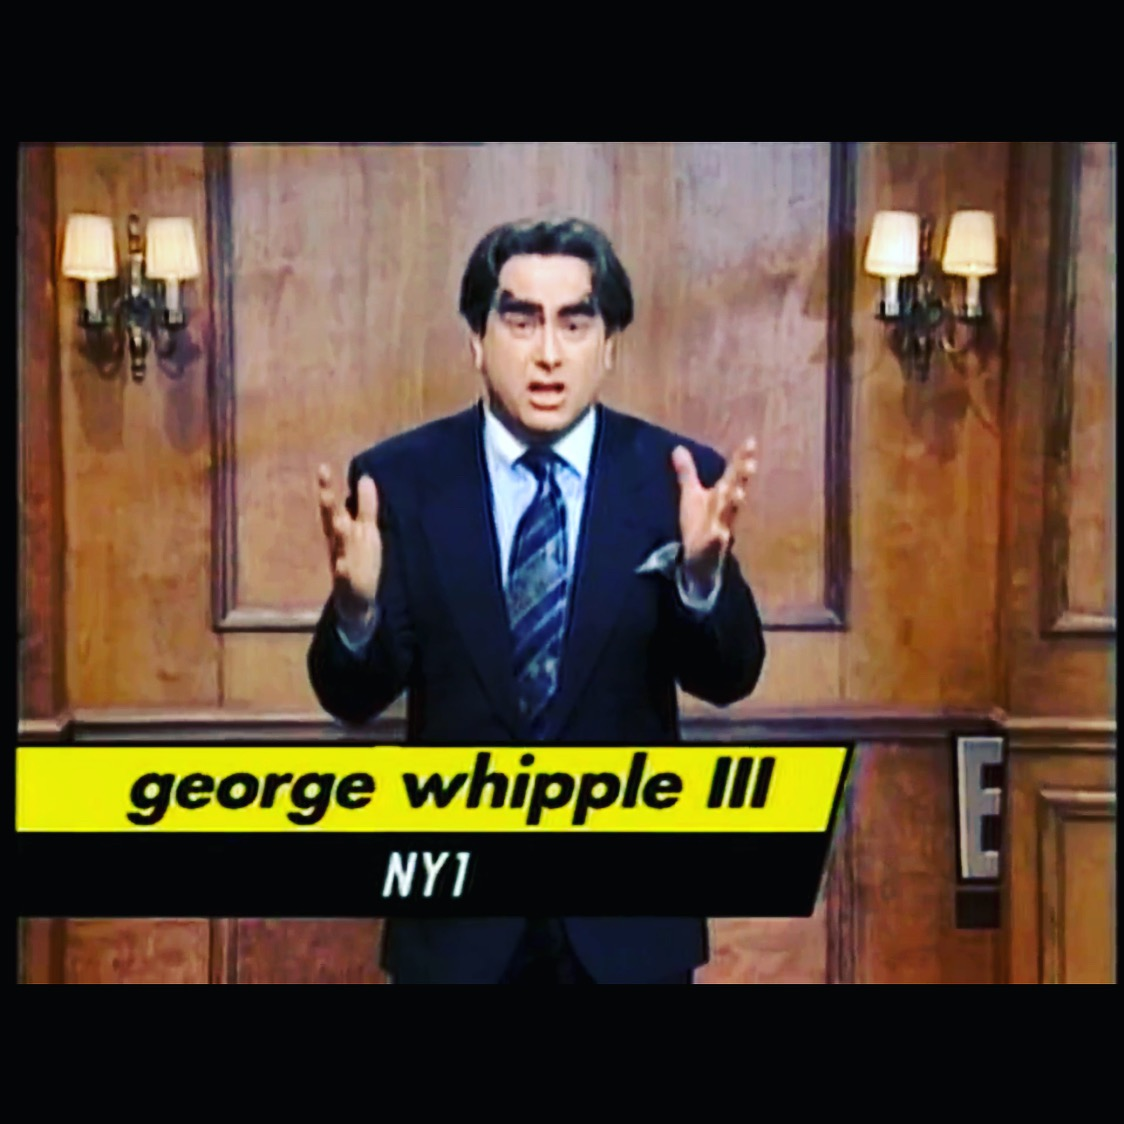 George impersonated on SNL! - In 1996, Darrell Hammond did a hilarious impersonation of George! Watch the full clip here.